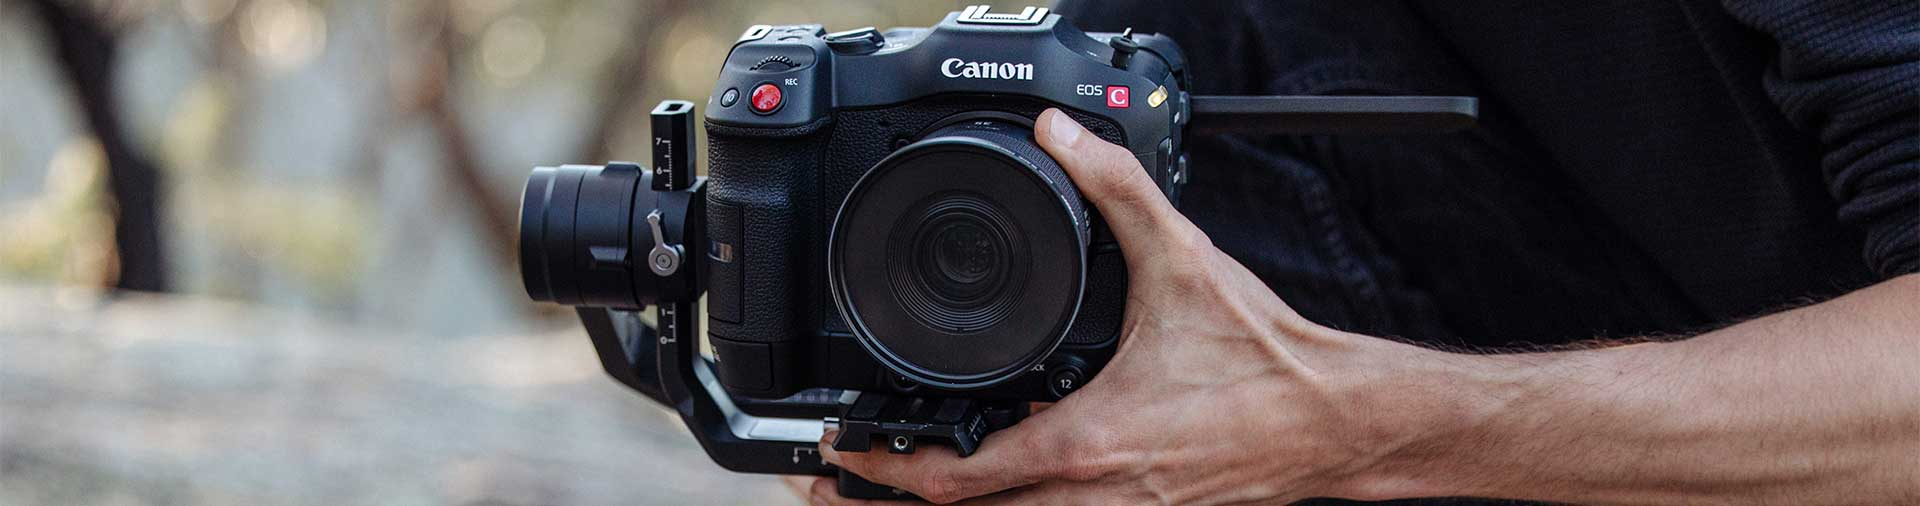 the-canon-eos-c70-with-lens-on-gimbal-hand-focusing